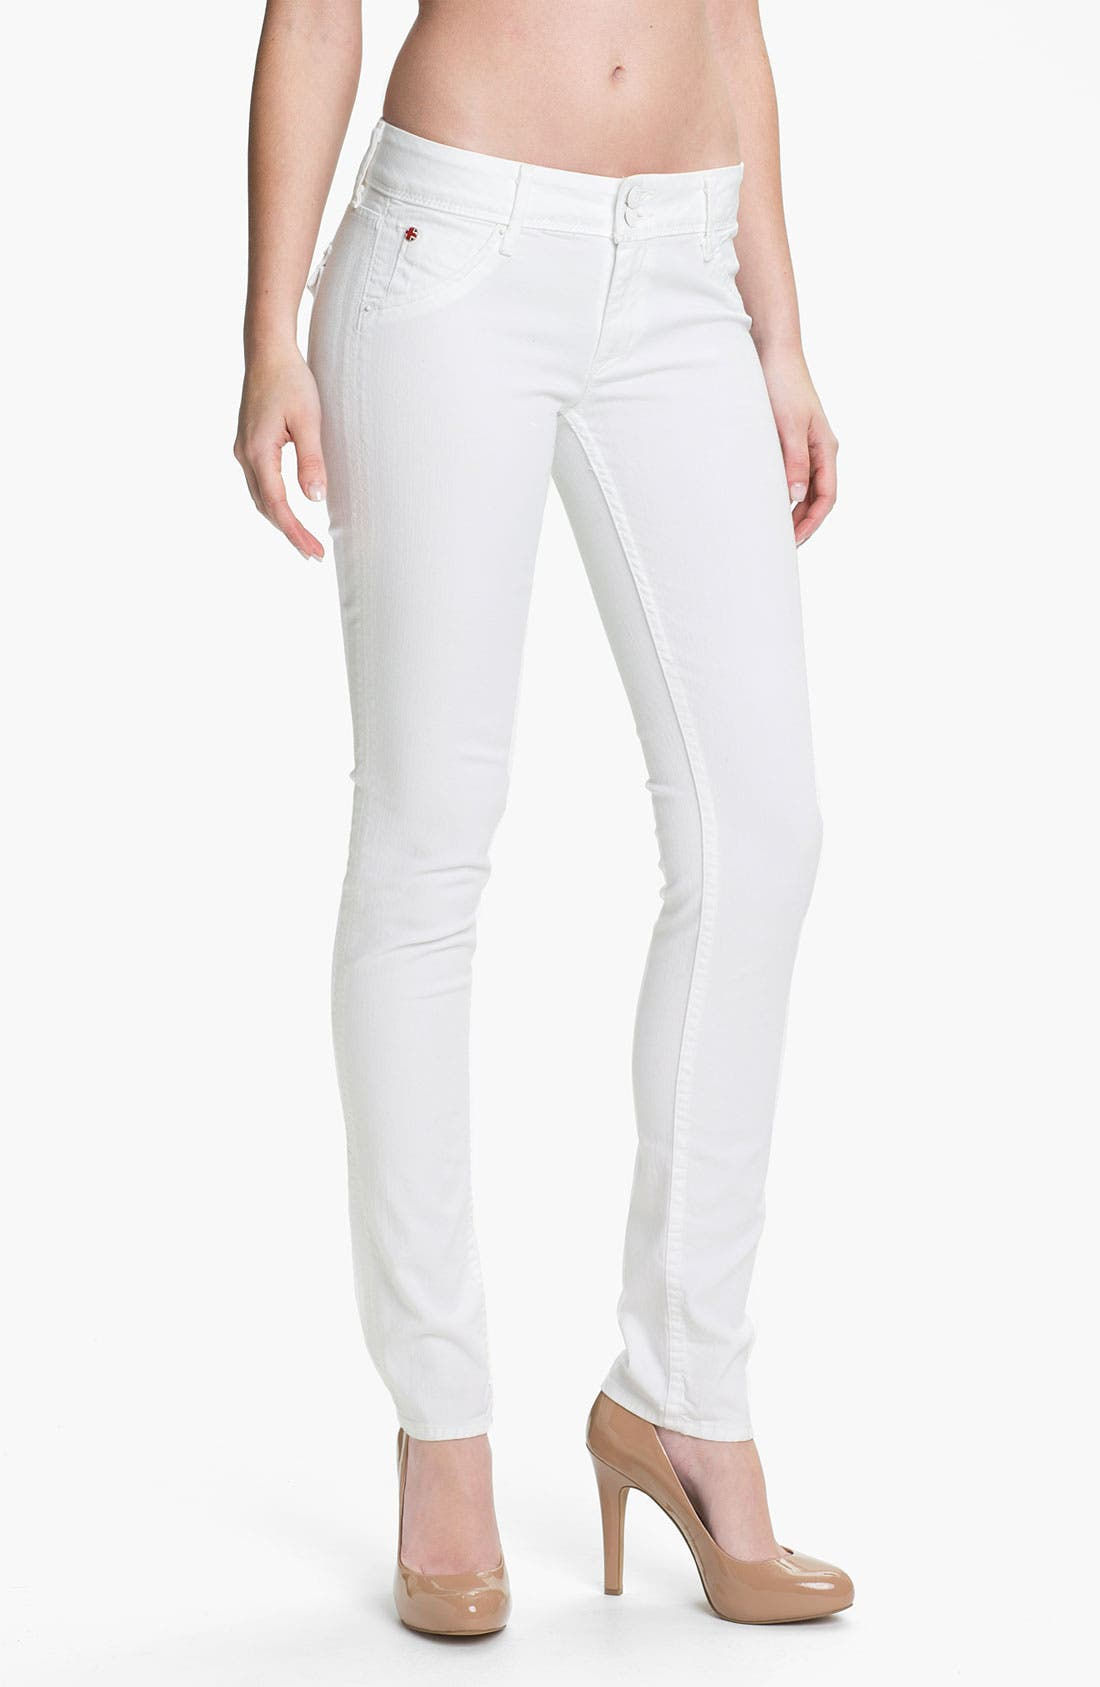 Main Image - Hudson Jeans Skinny Stretch Jeans (New White Wash)